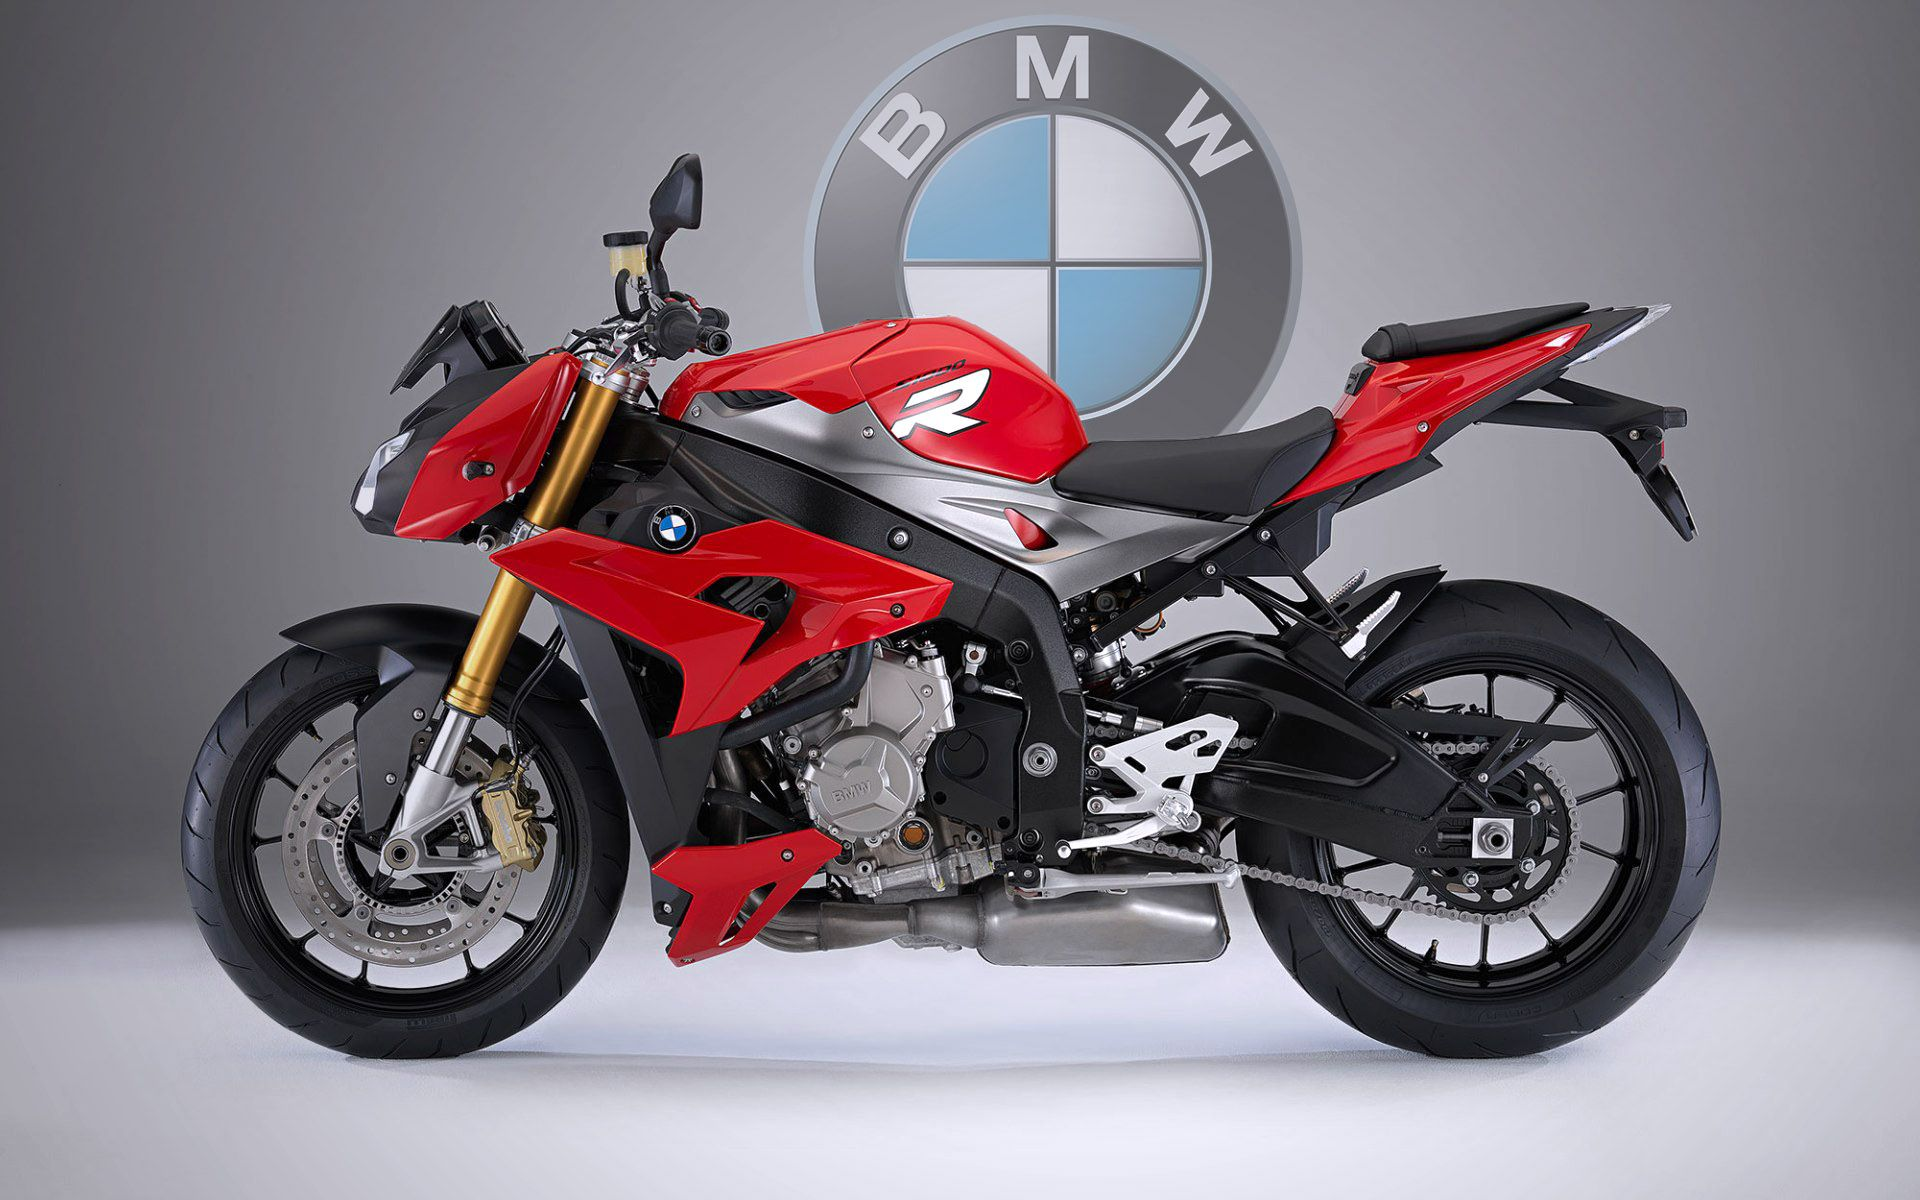 BMW S1000R 2015 Red Moto HD Wallpaper Bmw motorcycles